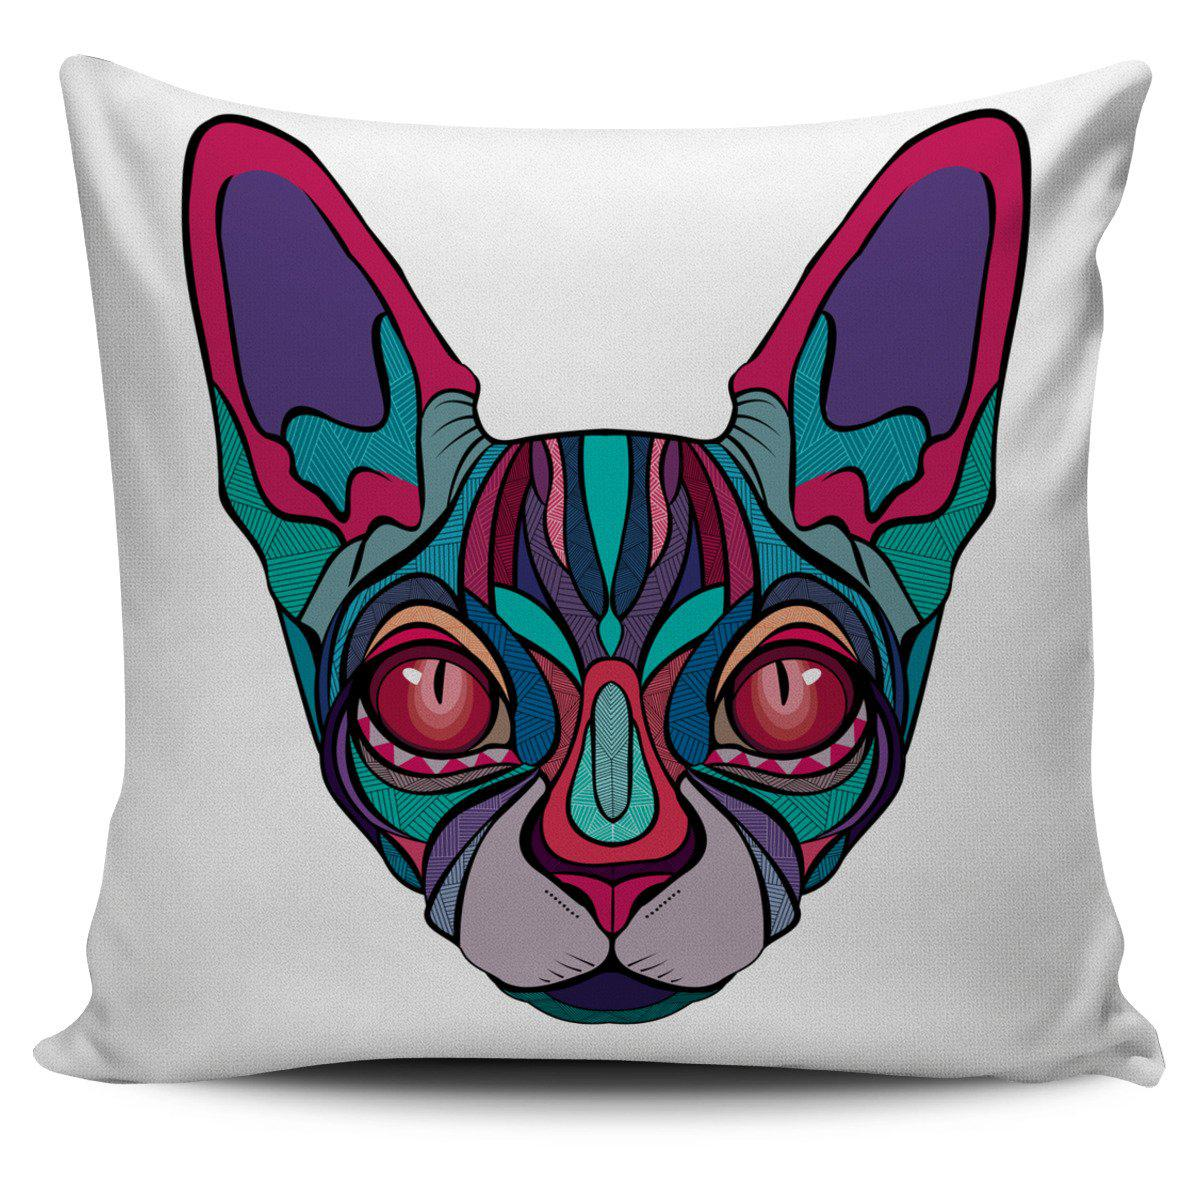 Shopeholic:Cat 03 Pillow Cover